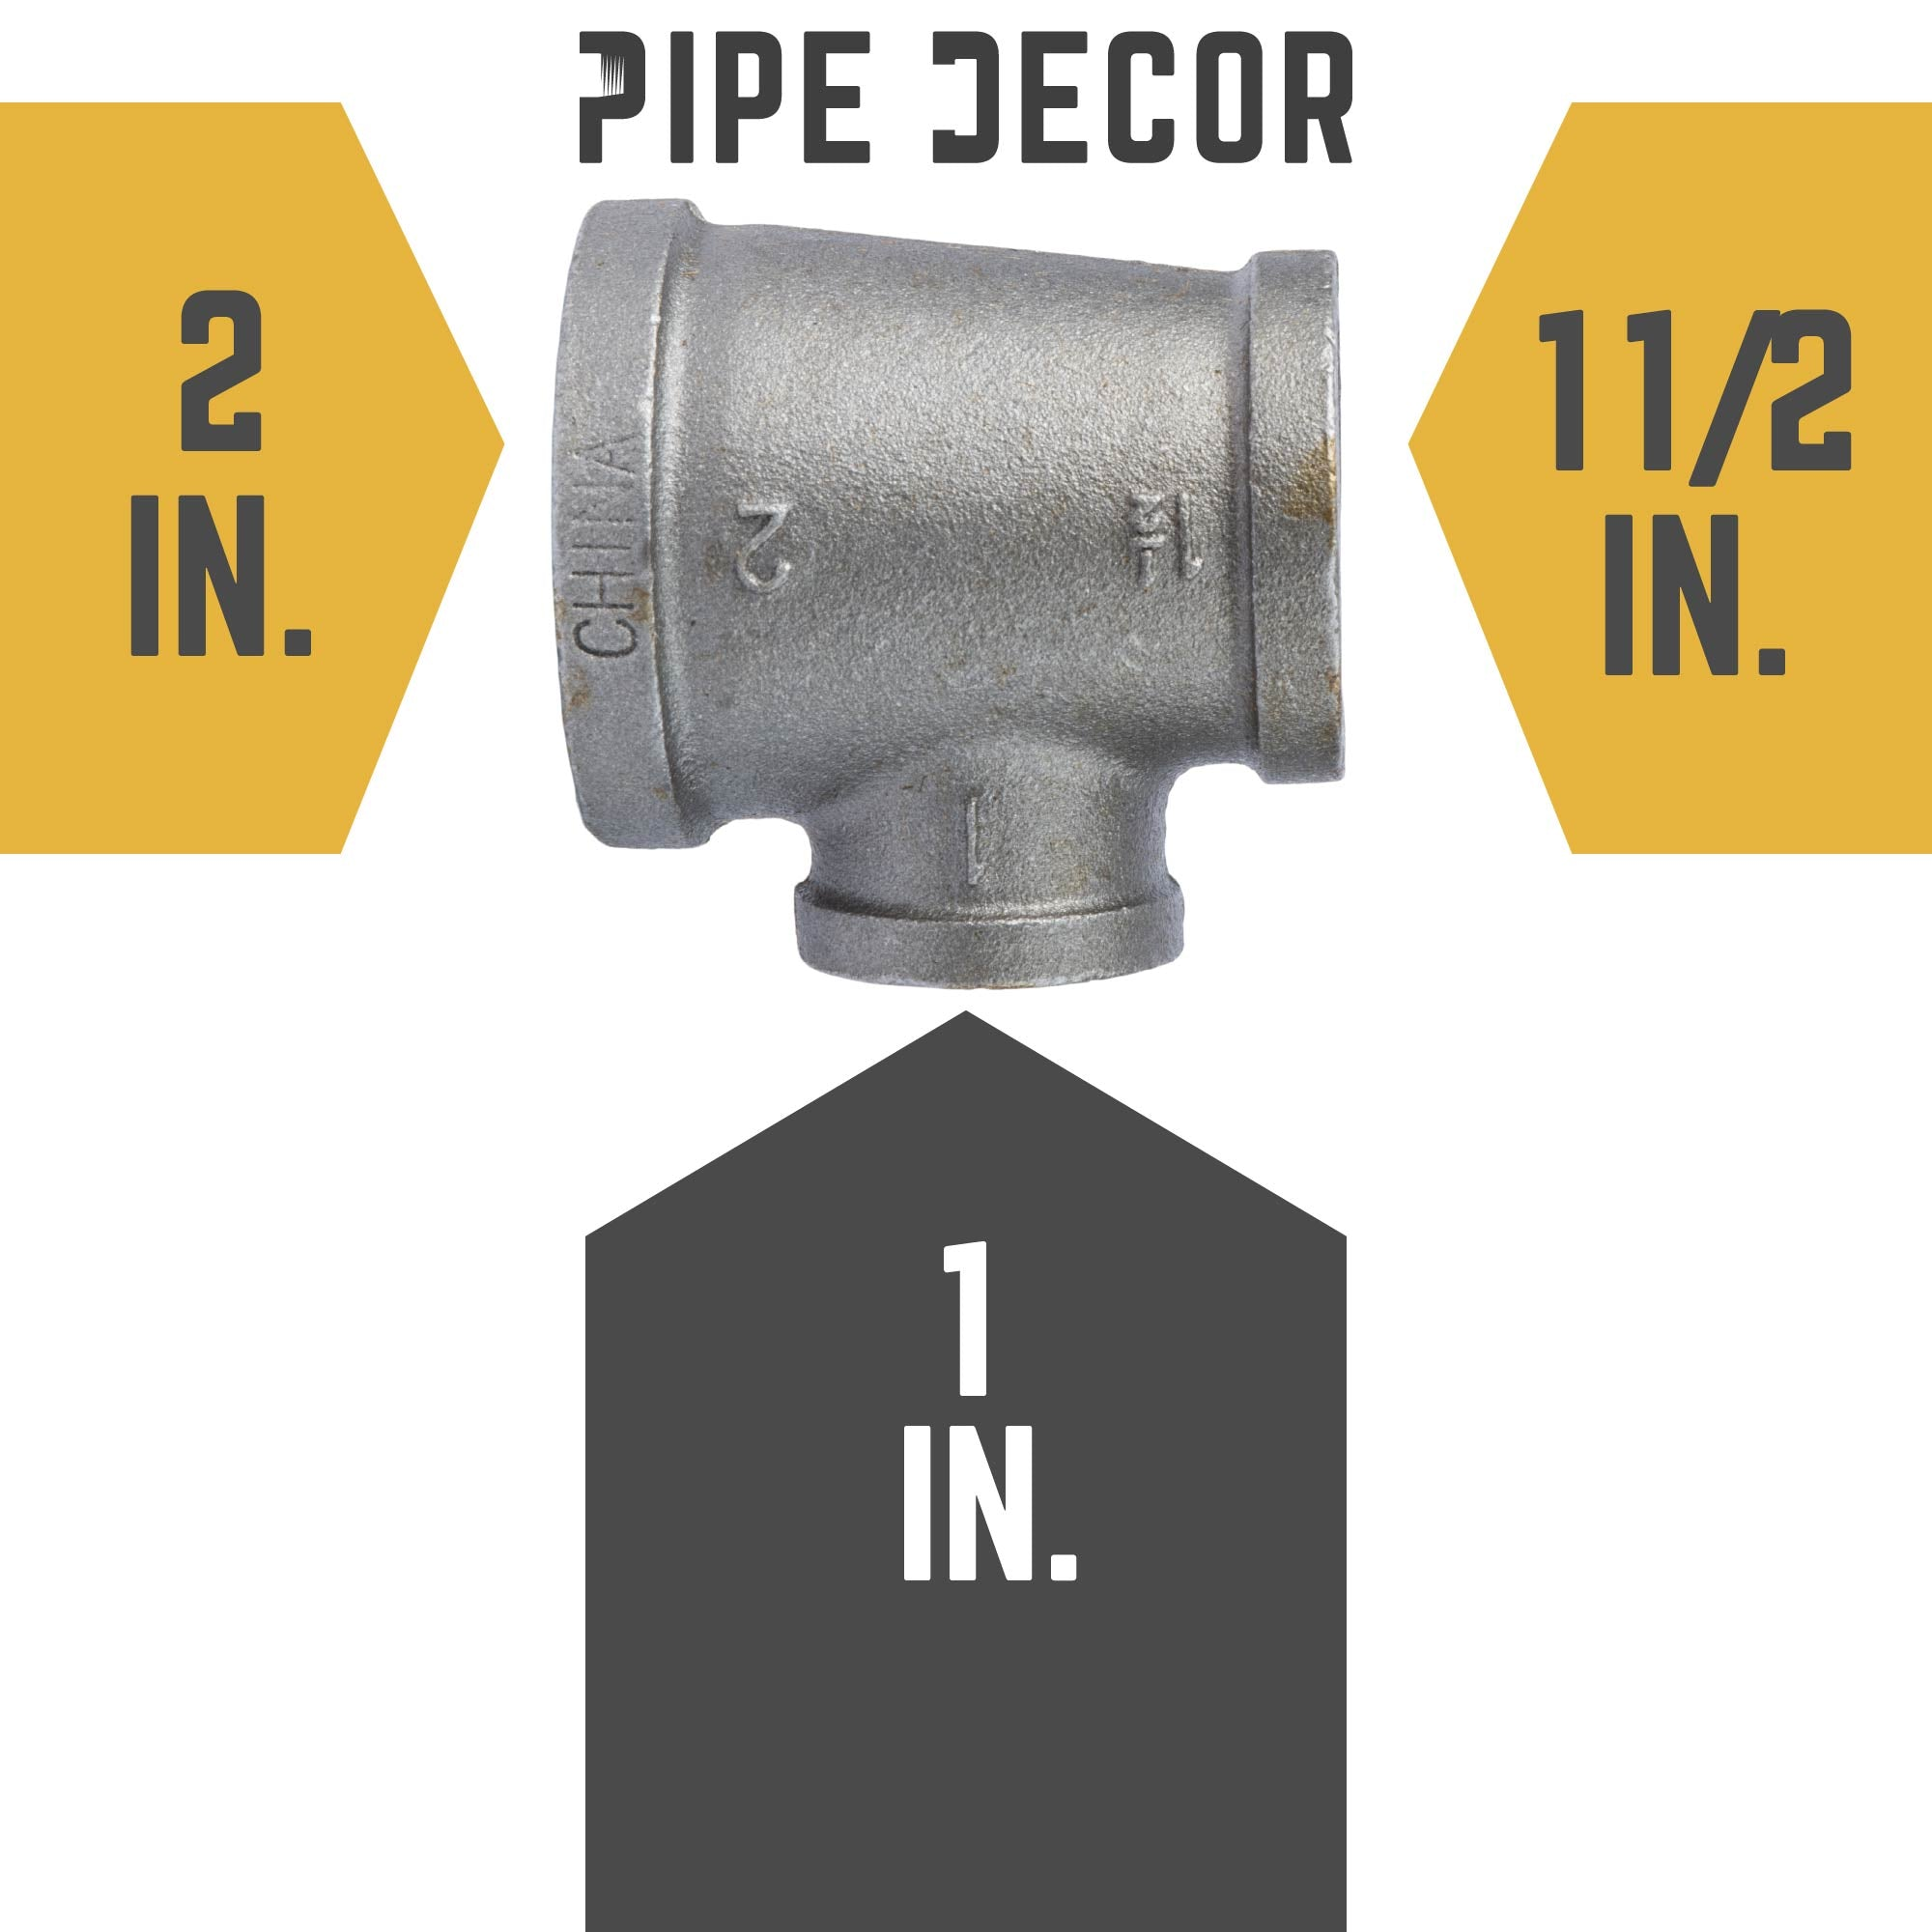 2 in. X 1 1/2 in. X 1 in.  Black Reducing Tee - Pipe Decor